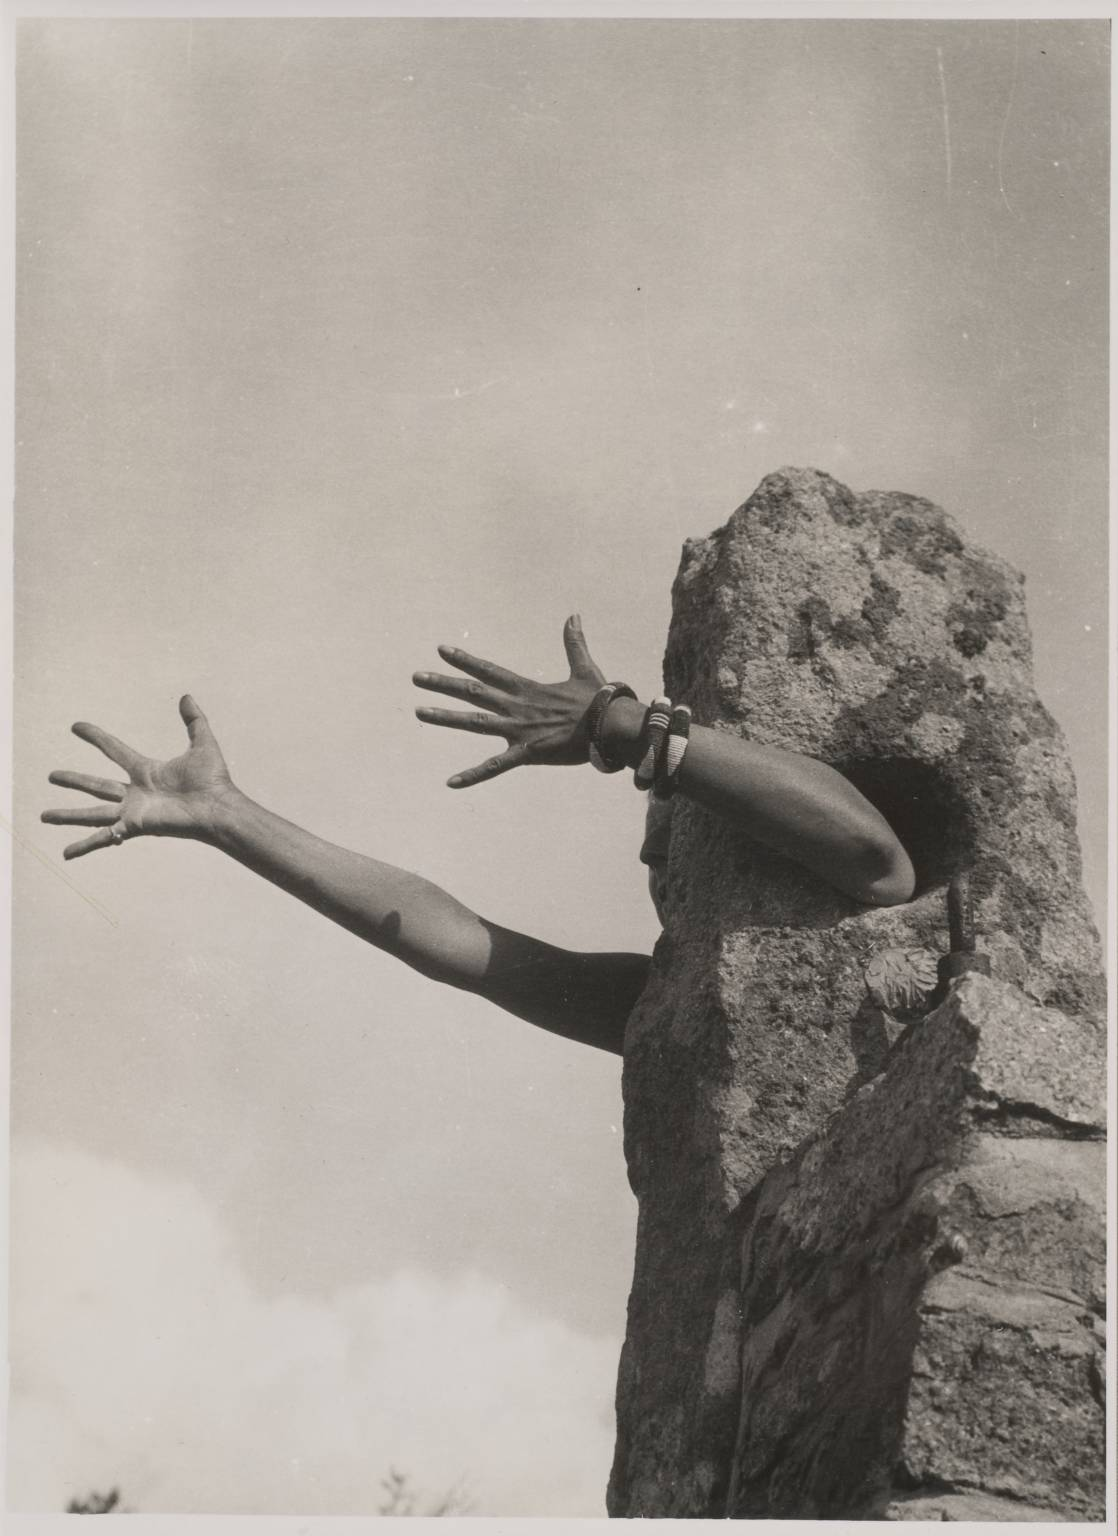 I Extend My Arms, 1931